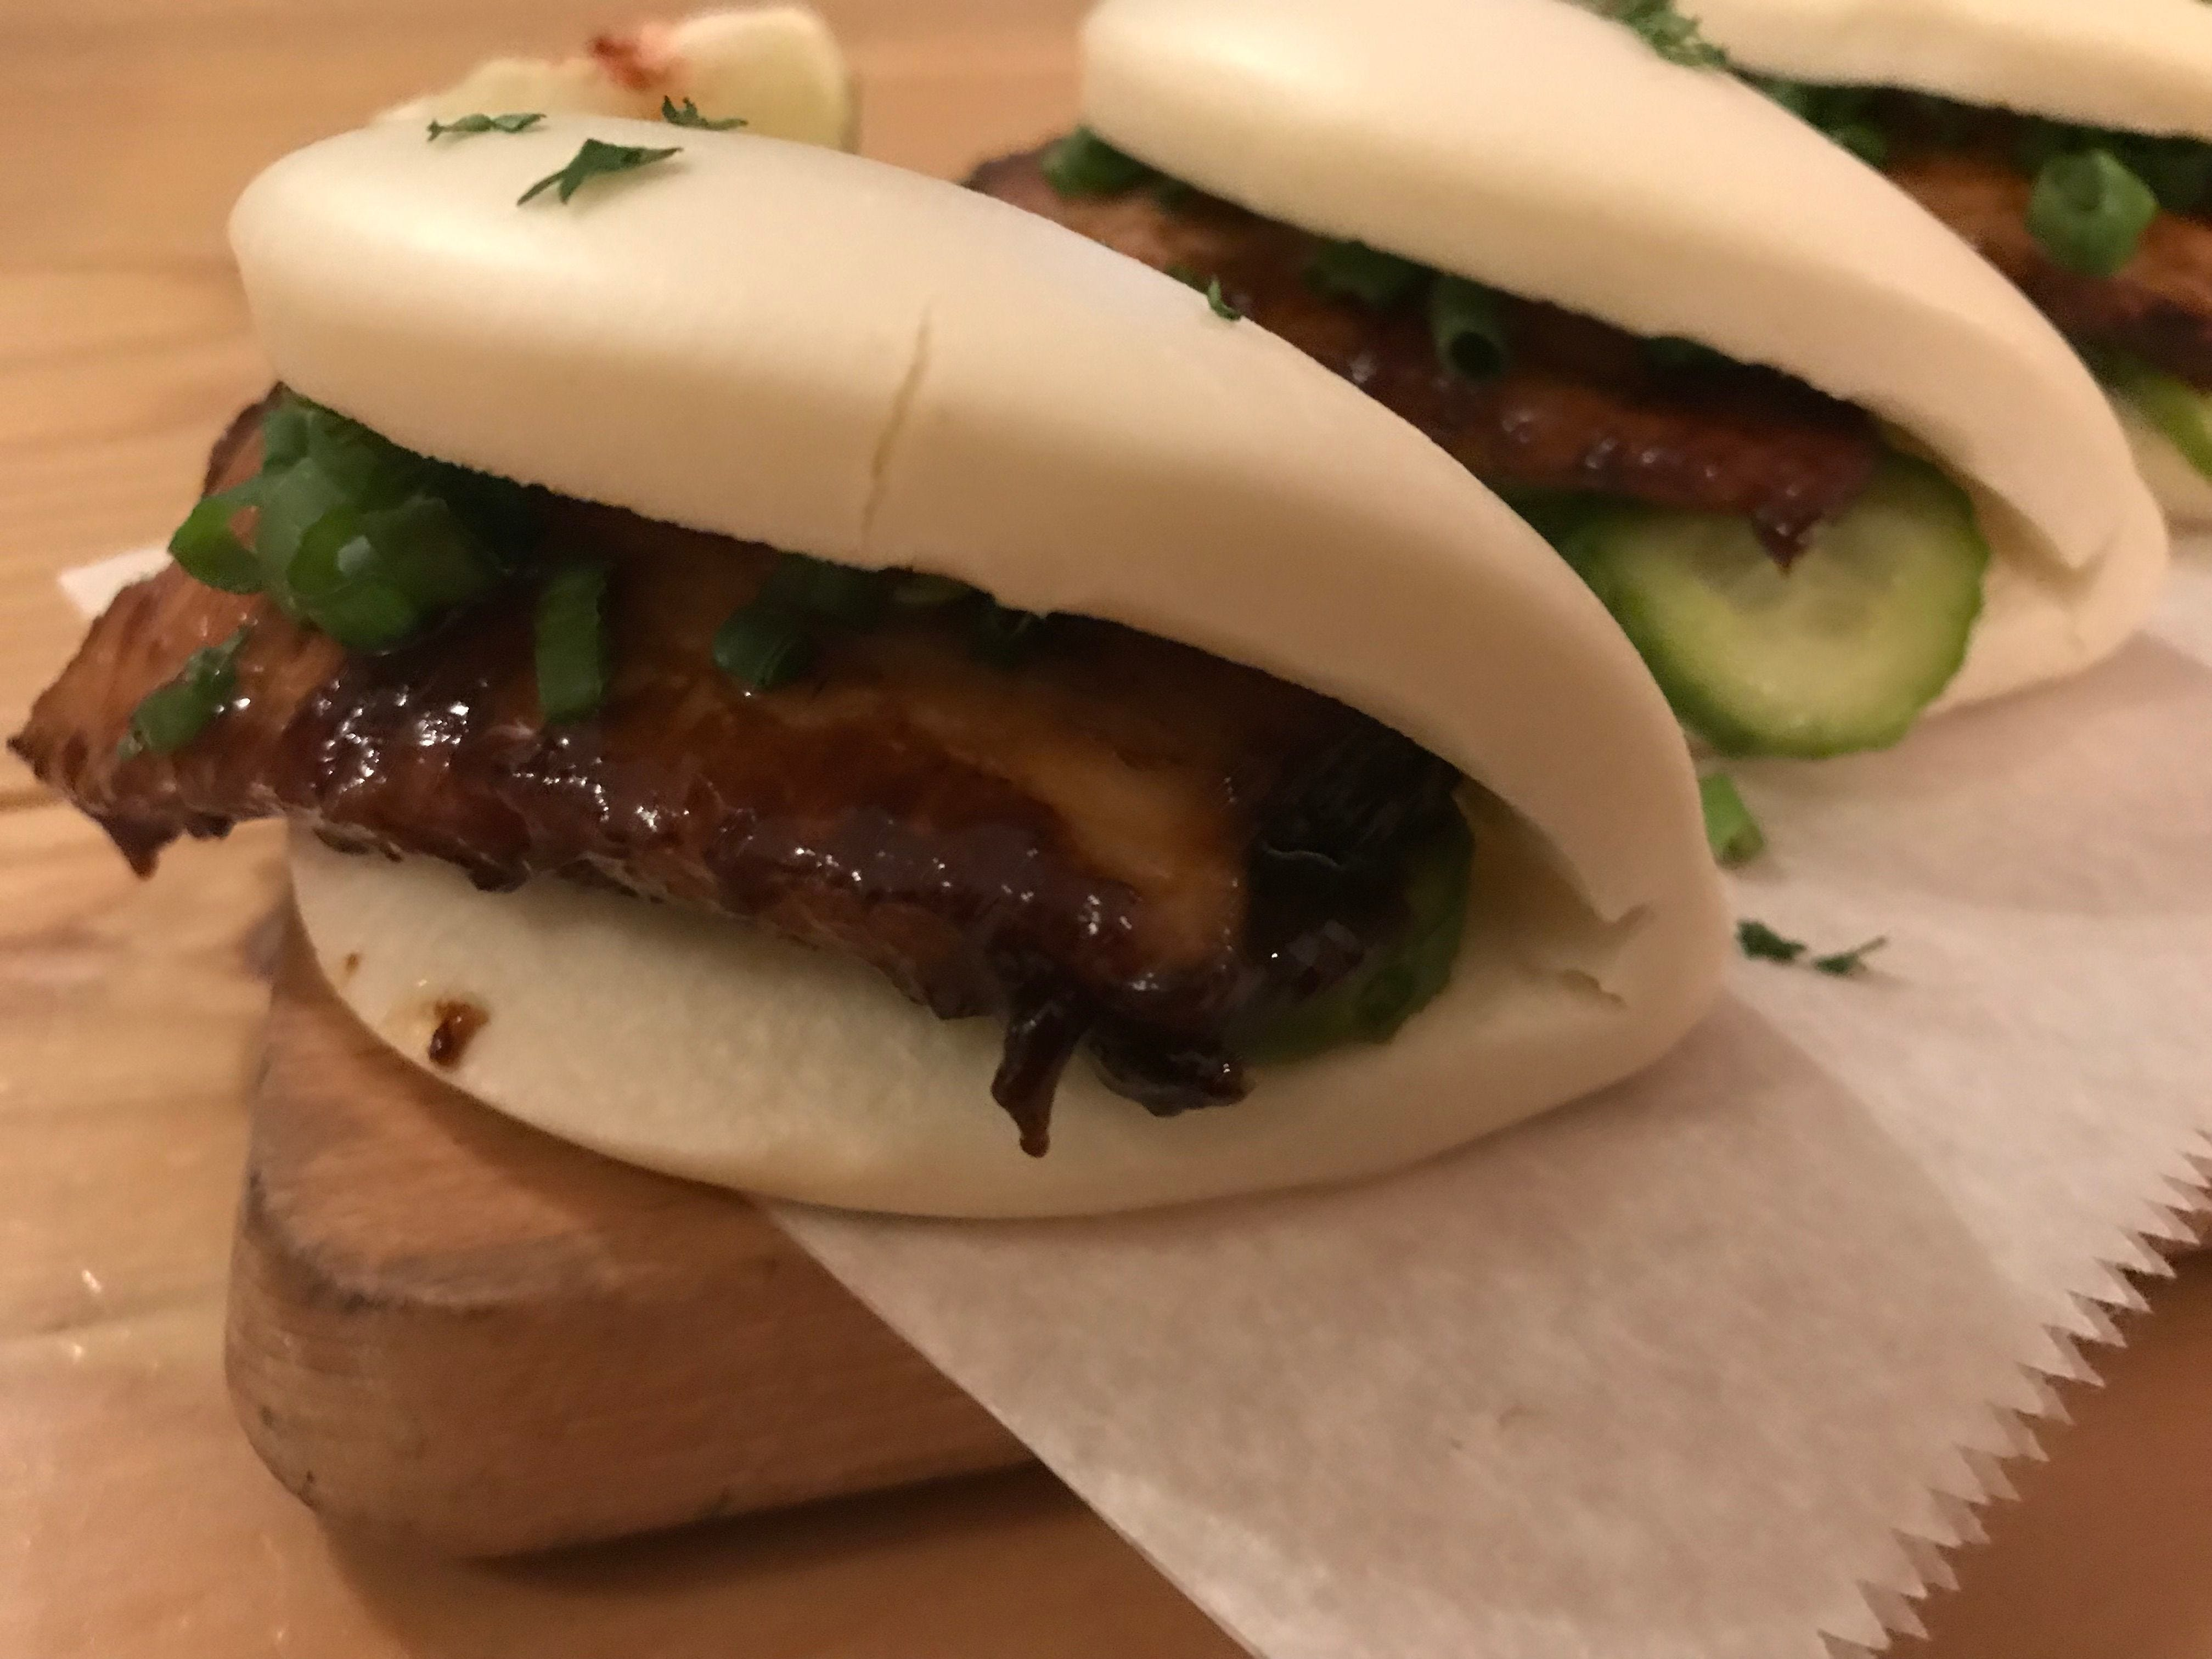 Chicken or pork belly buns are on the menu at Brother's Noodle Bar in Murfreesboro.